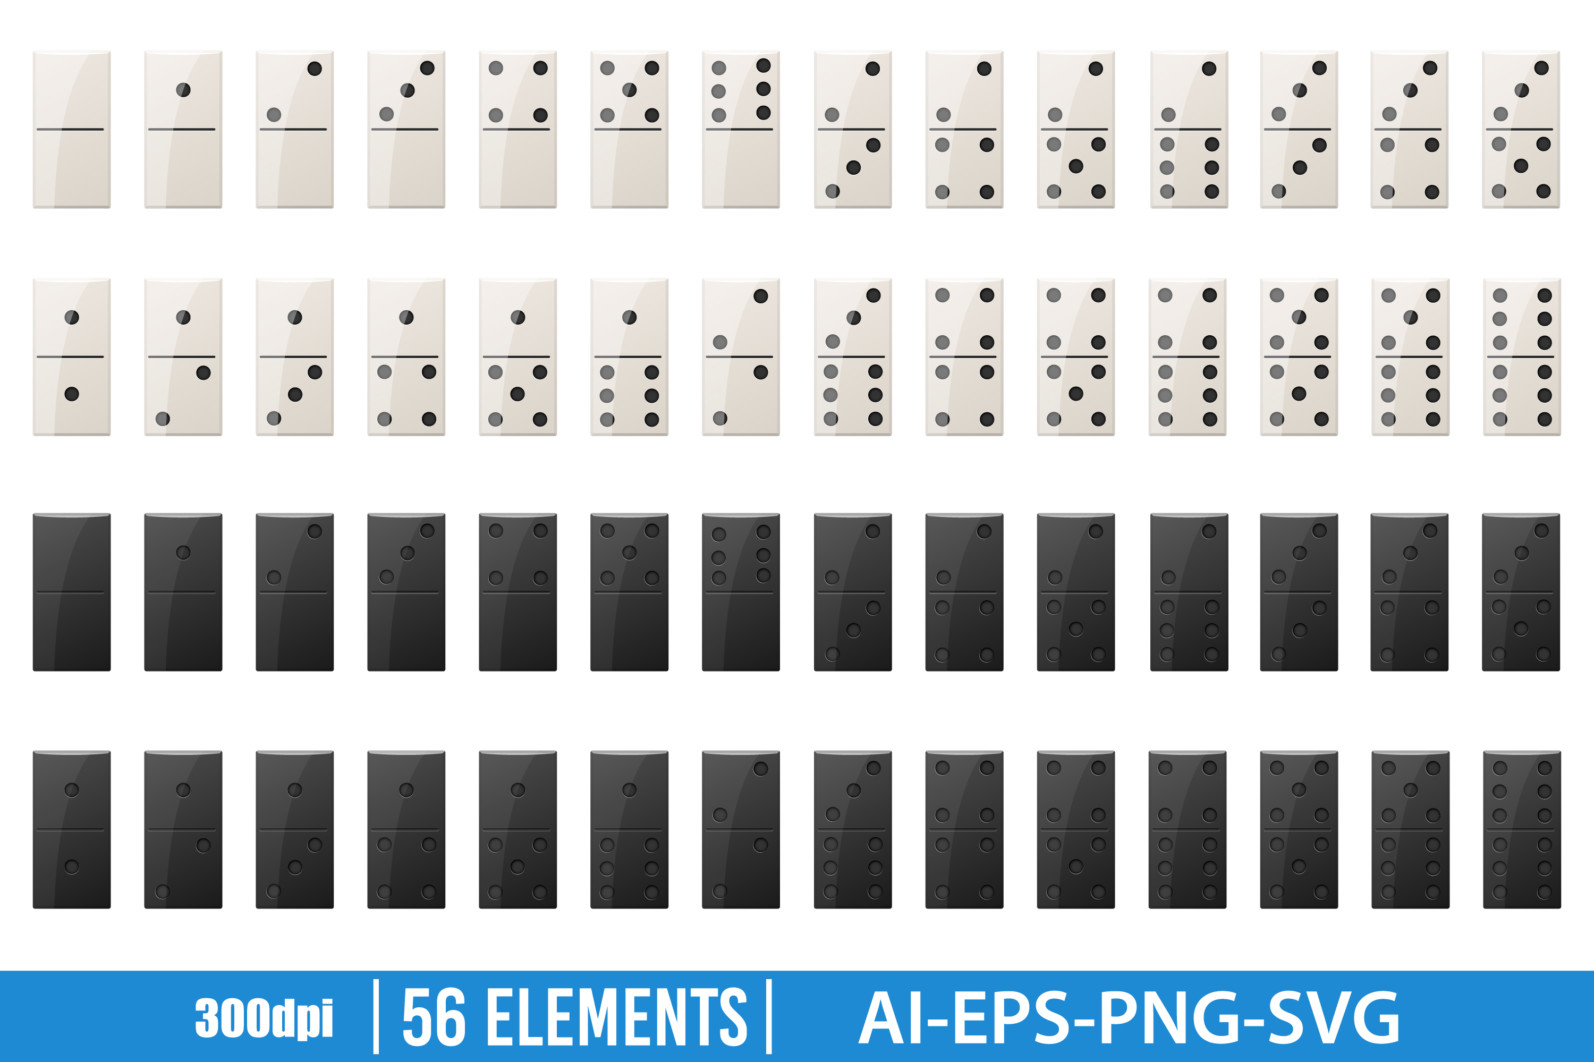 Domino pieces clipart vector design illustration. Domino pieces set. Vector Clipart Print - DOMINO PIECES scaled -